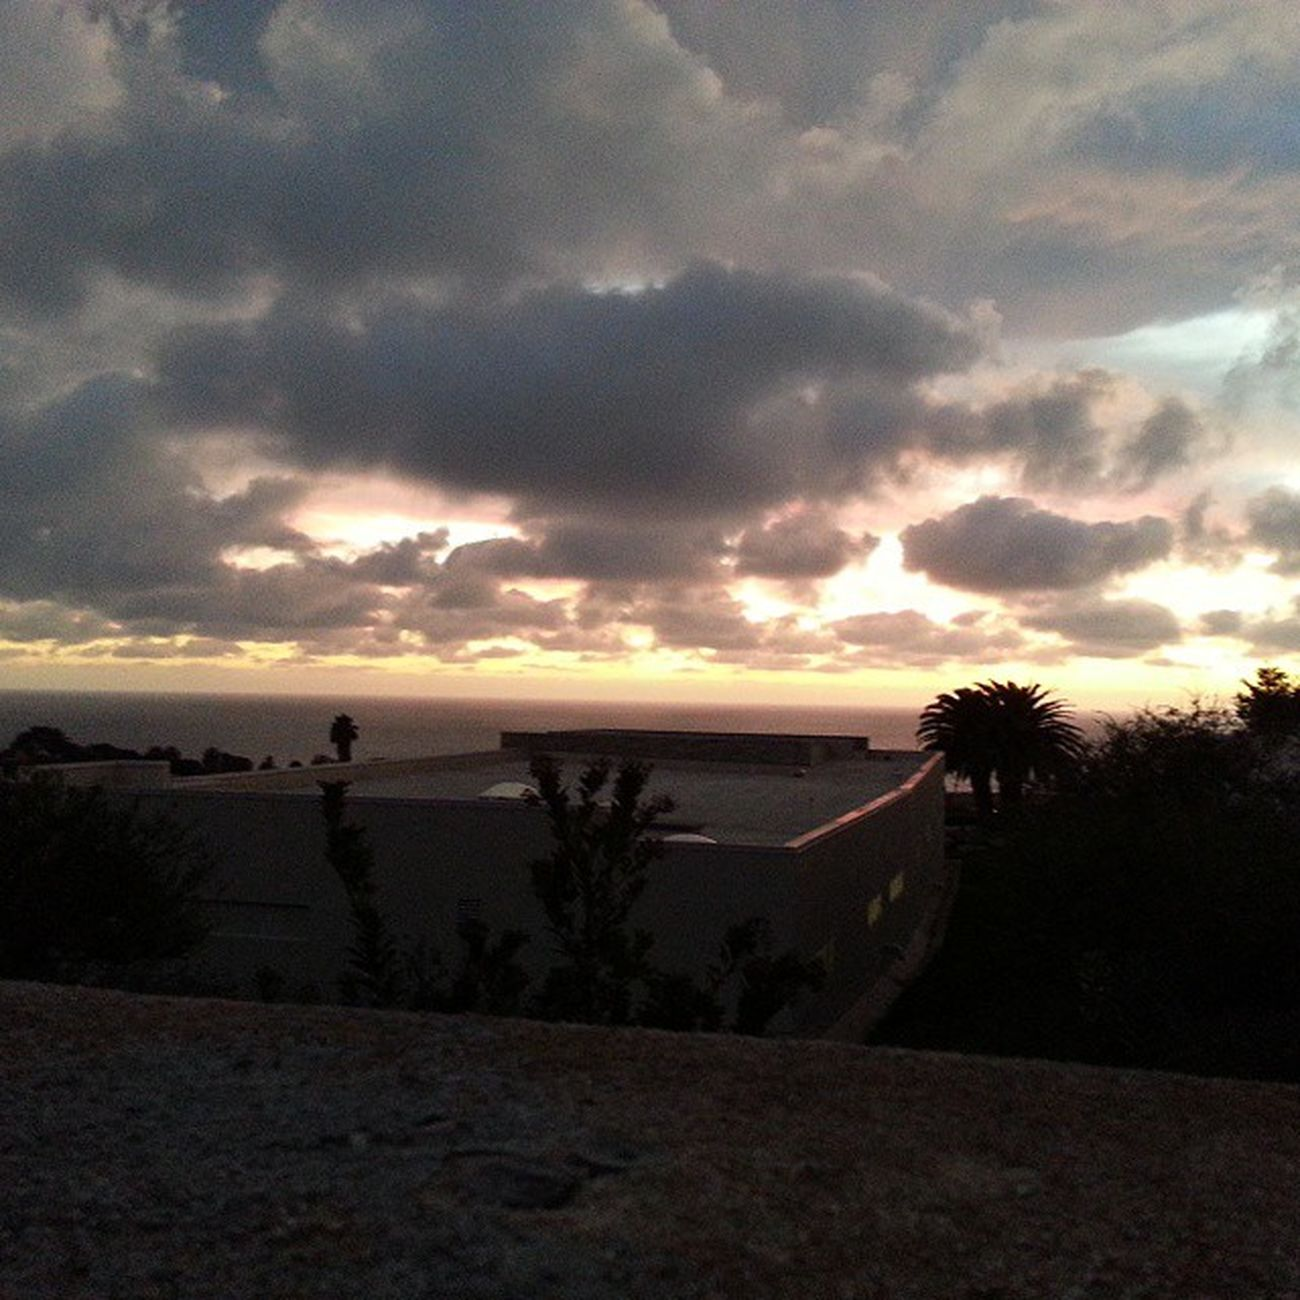 Sky Clouds Ocean Rpv Beautiful Sunset Cloudy Day Love IT